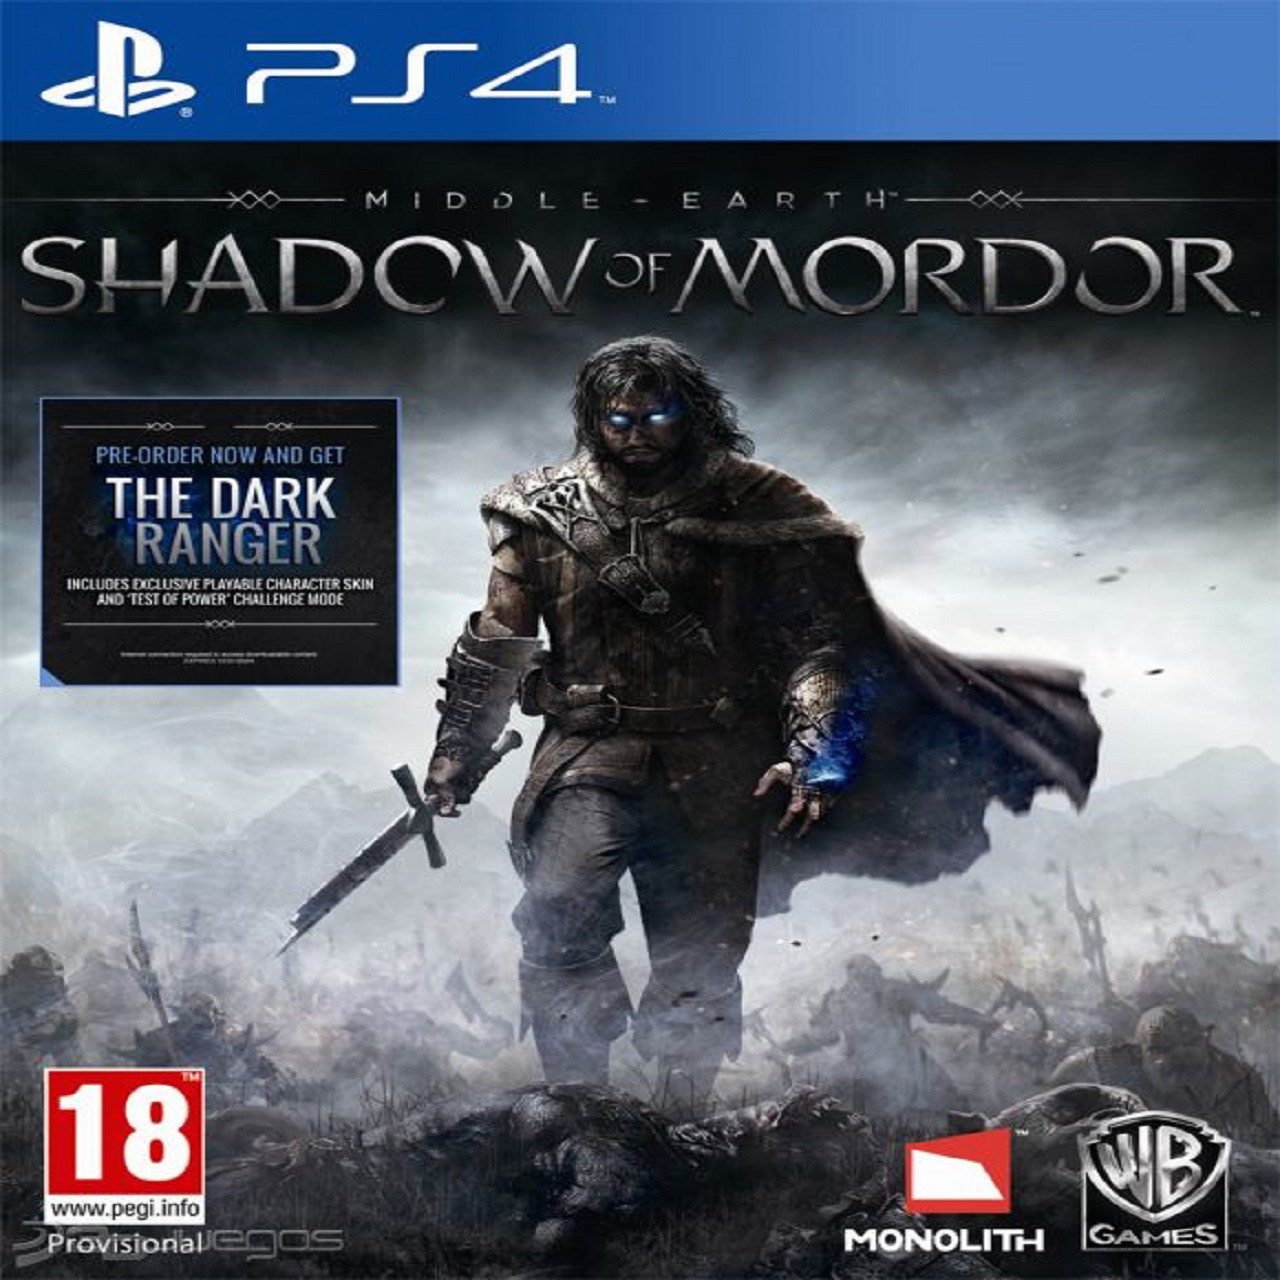 Middle-earth: Shadow of Mordor SUB PS4